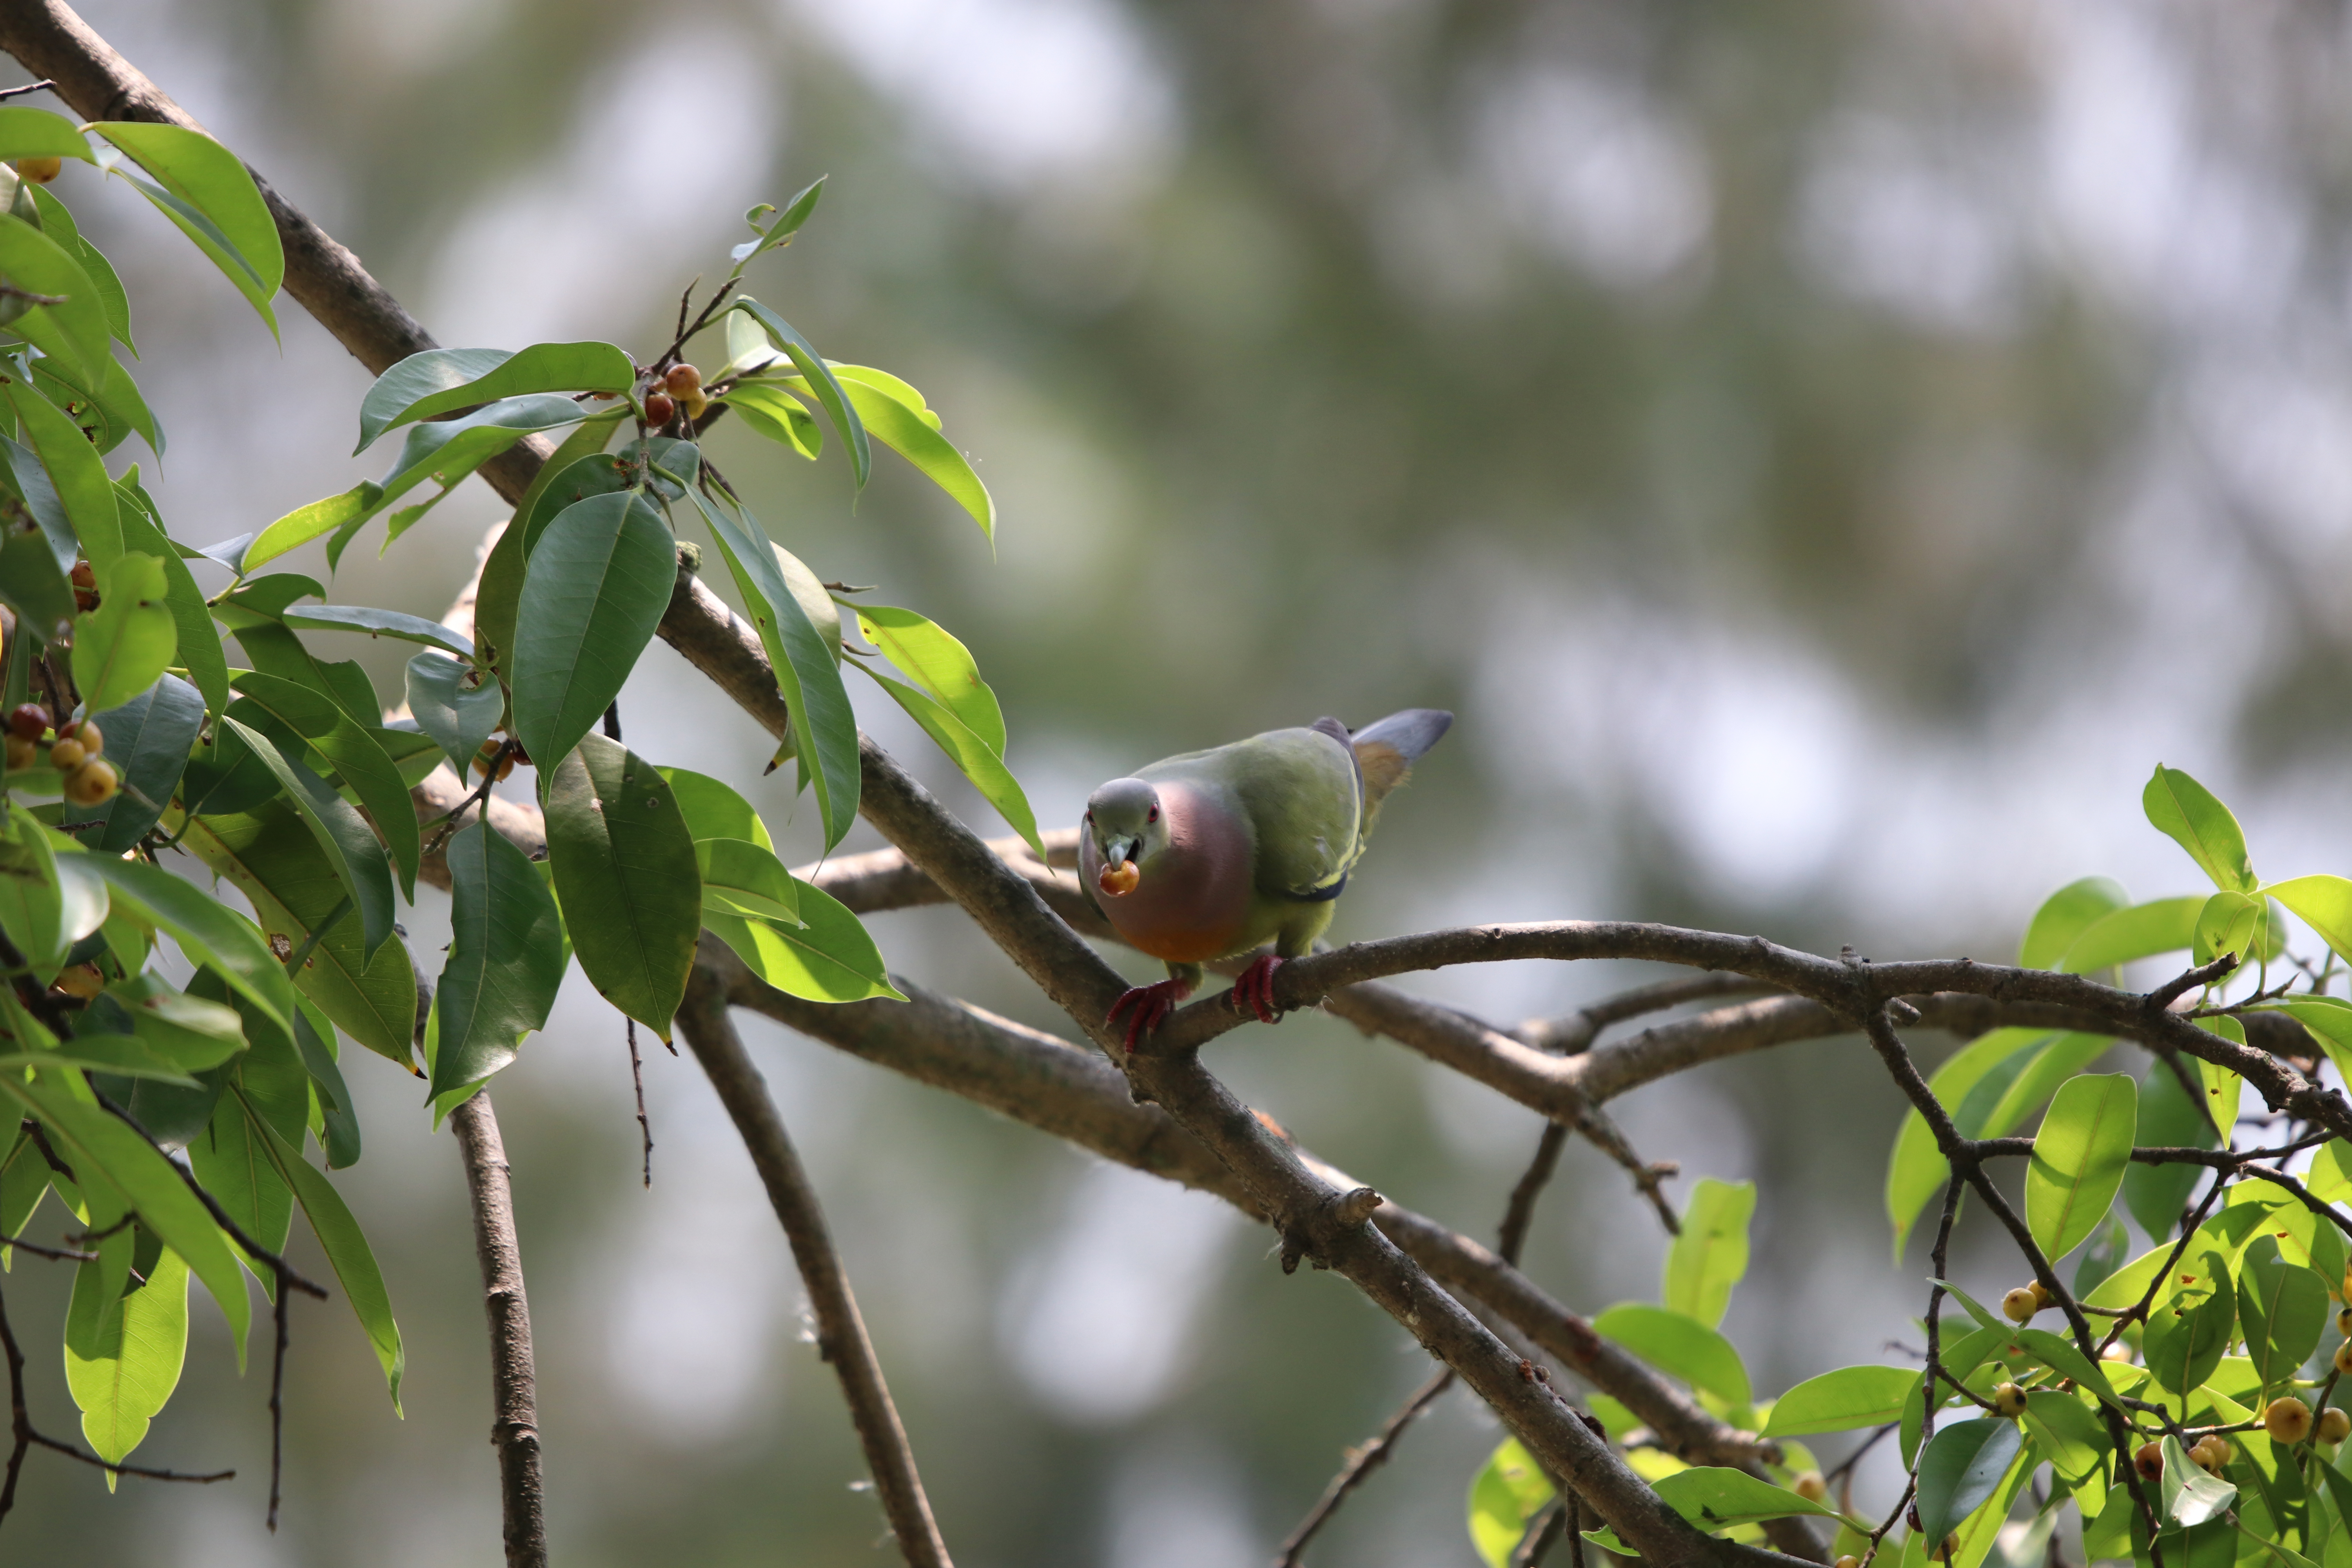 emerald-dove-colorful-bird-eating-fruit-tree-branch-forest